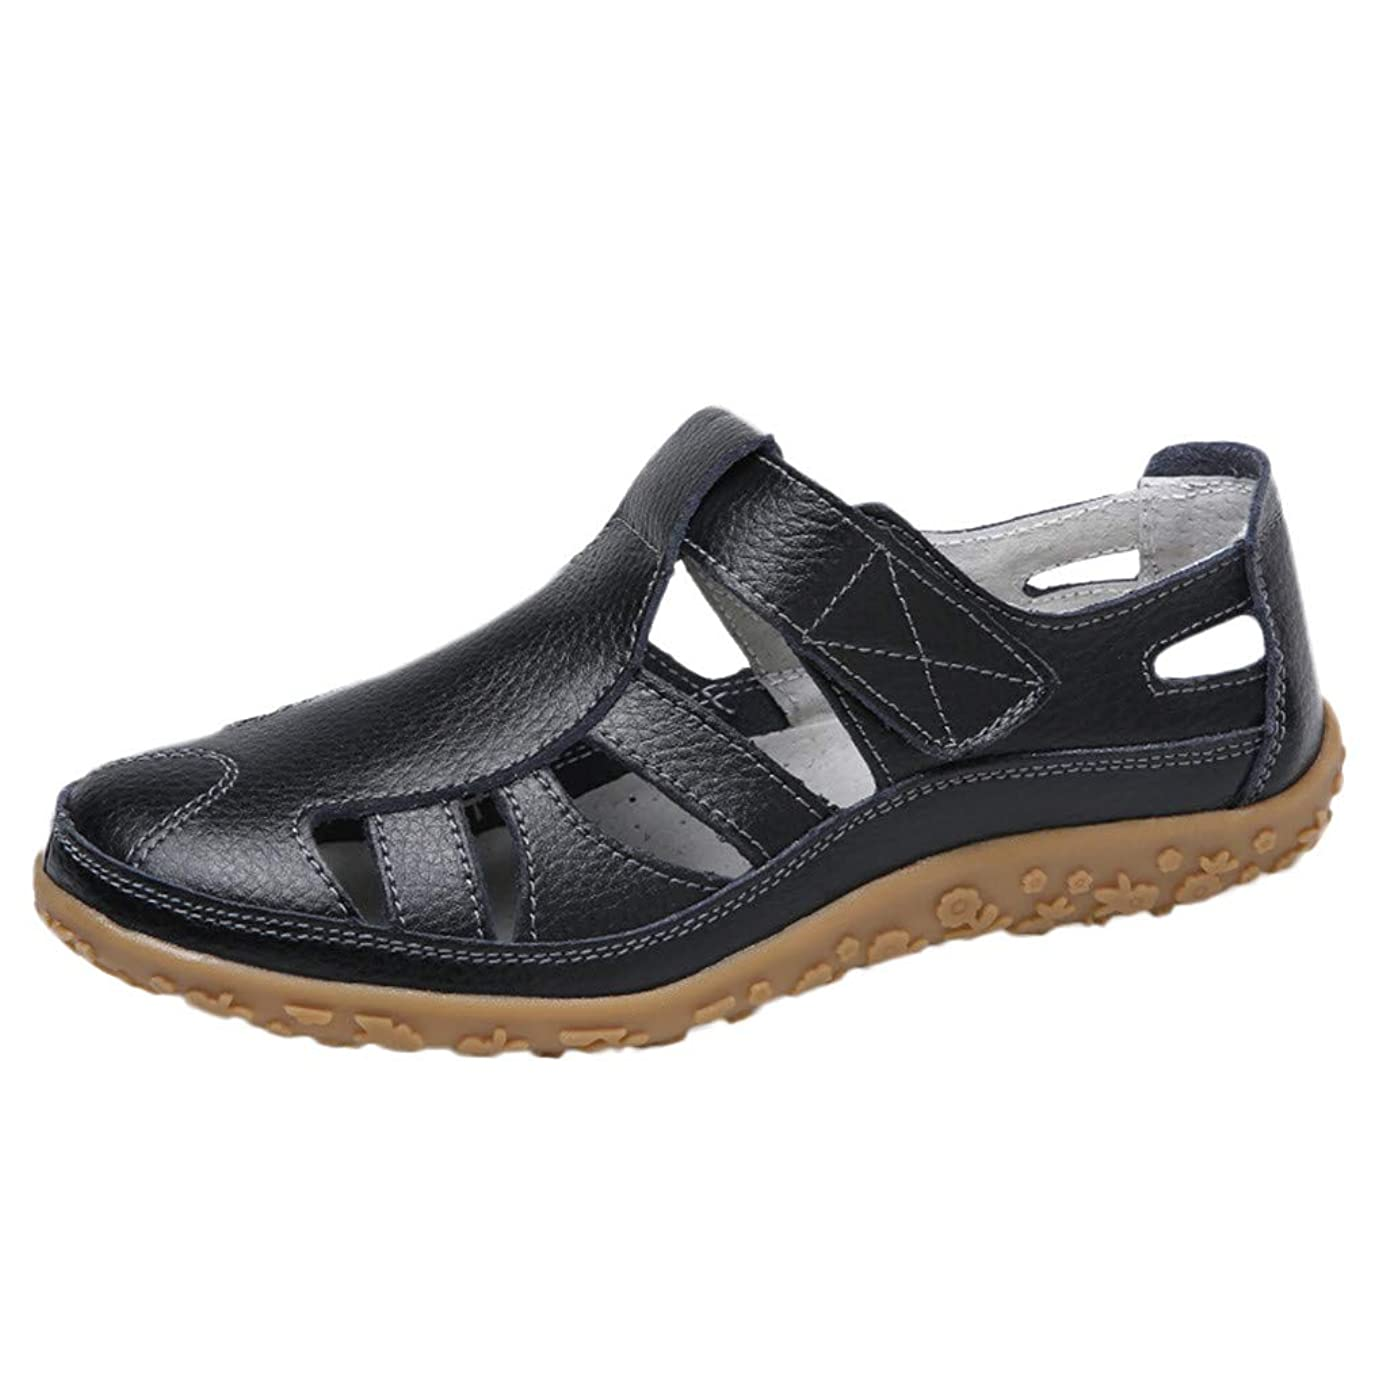 SMALLE_Shoes Closed Toe Sandals for Women,Summer Leather Loafers Moccasins Hollow Out Casual Flats Breathable Sandals